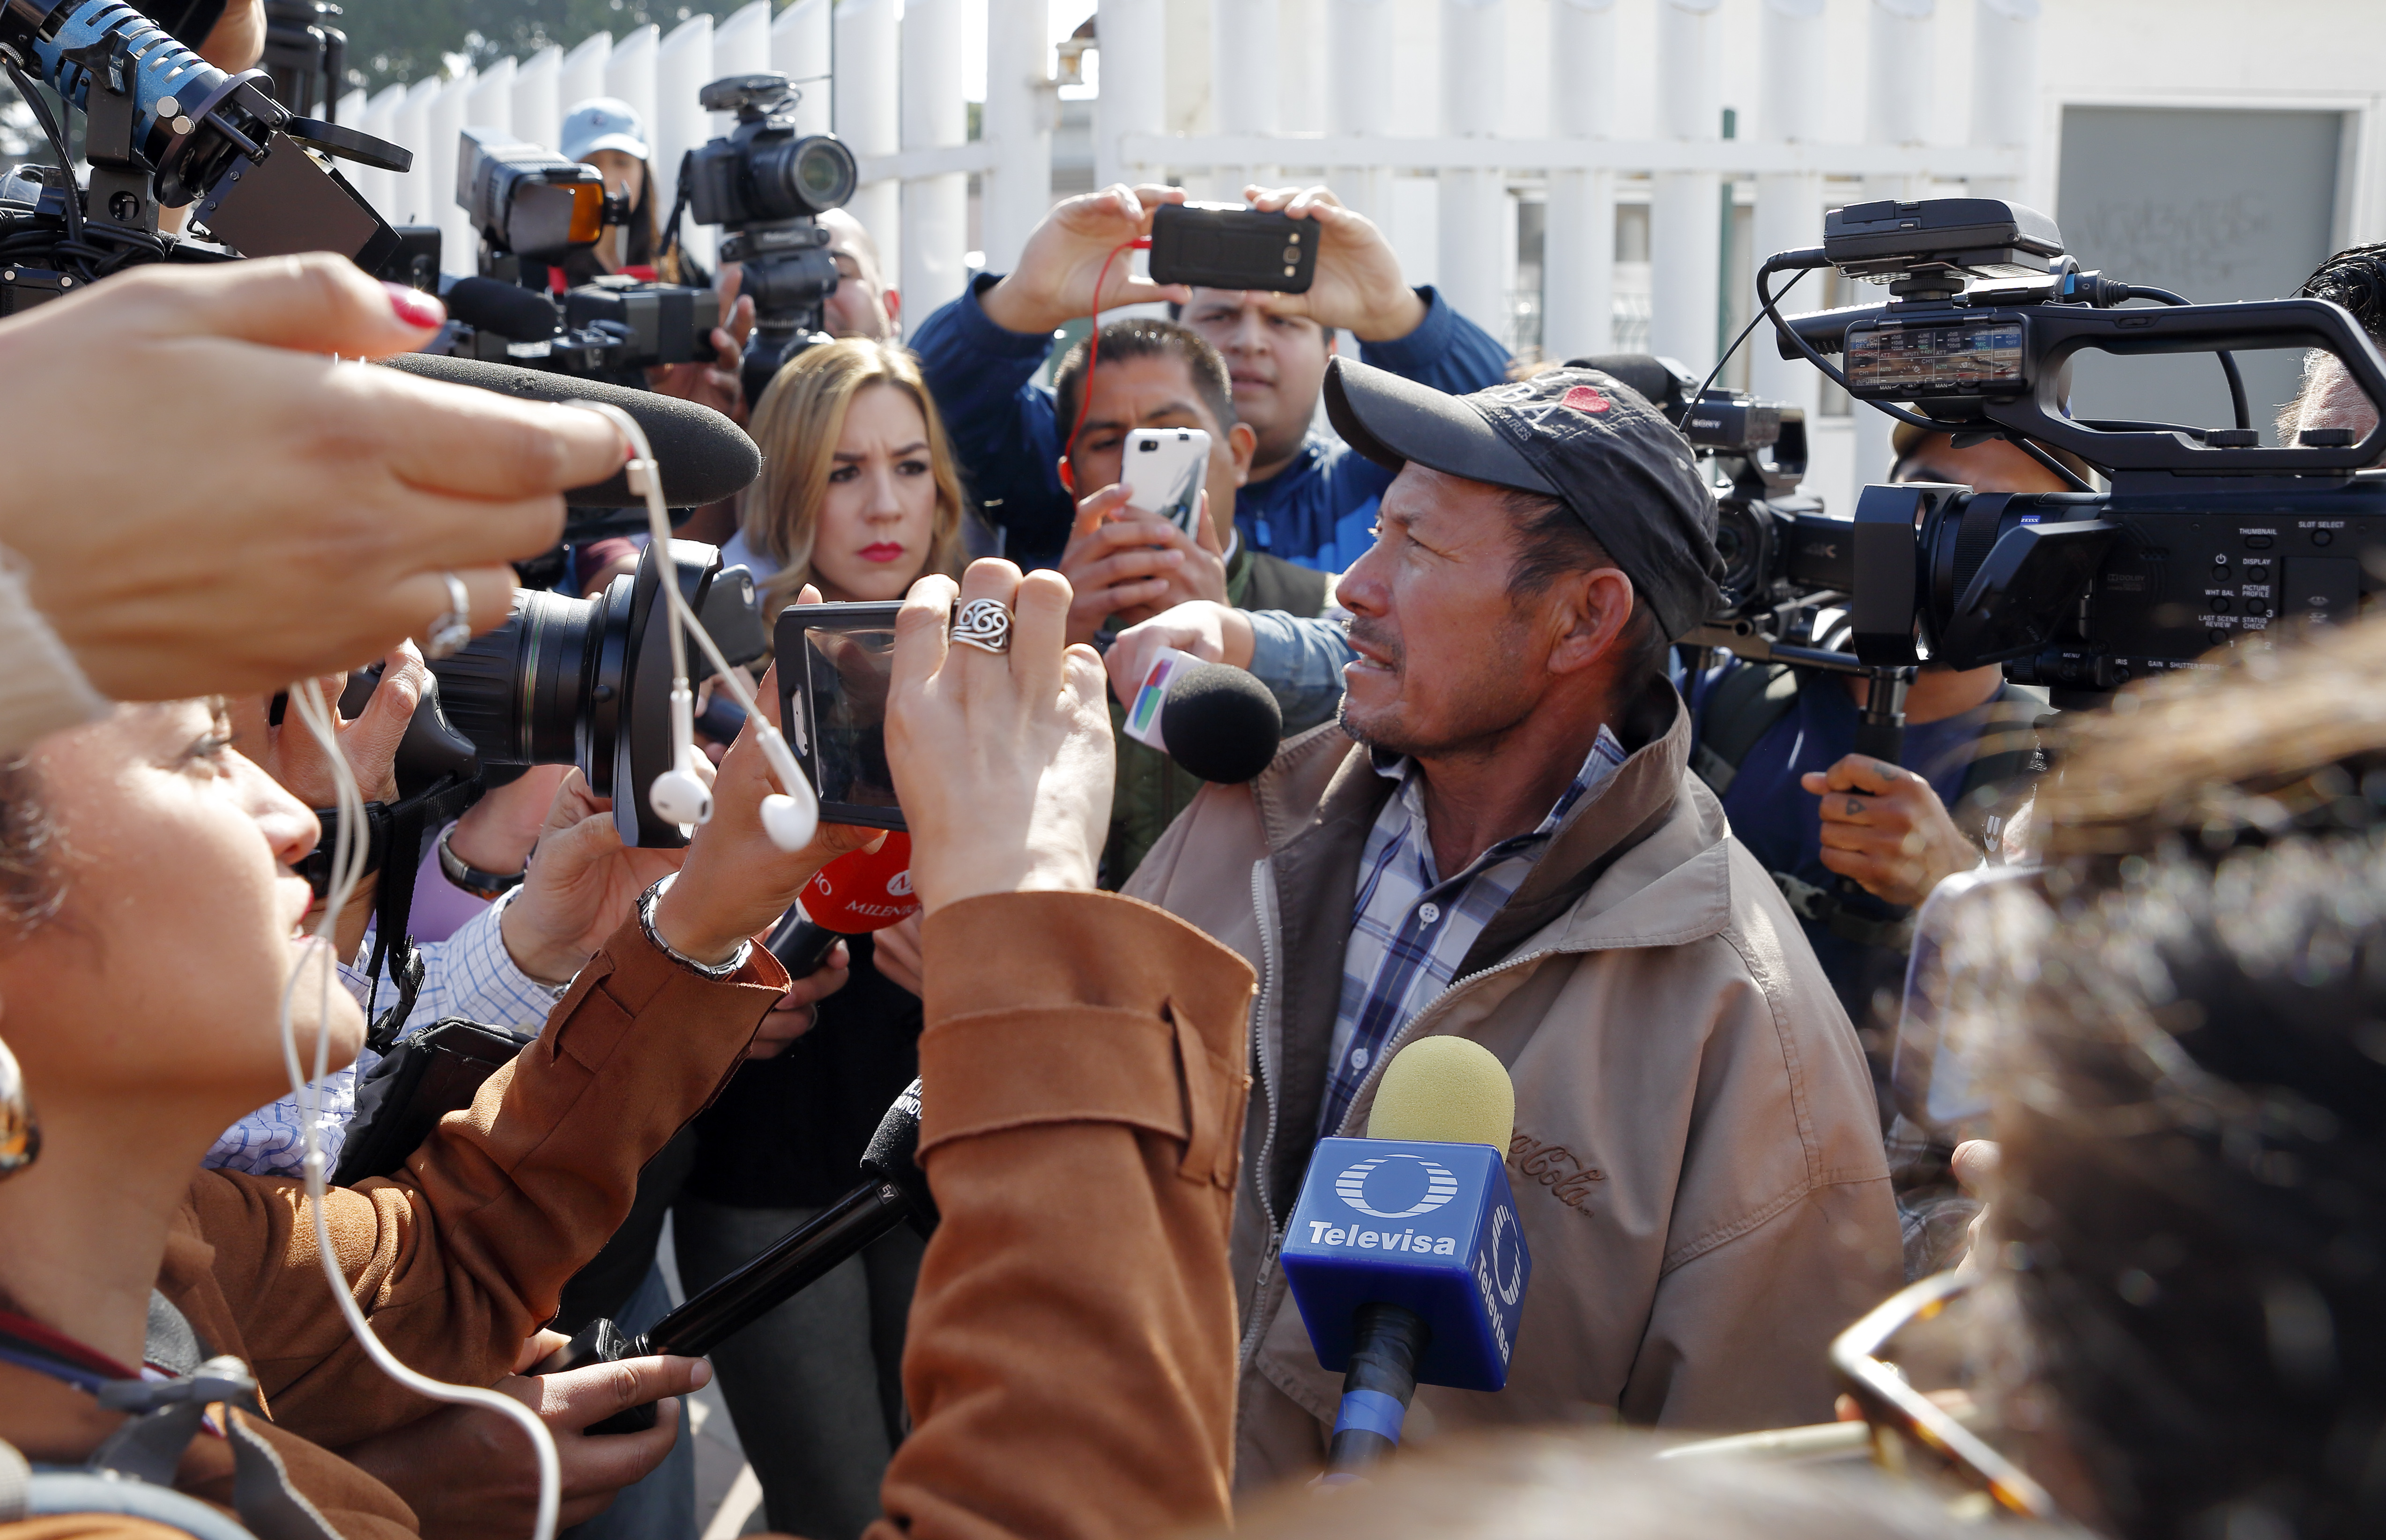 Carlos Catarldo Gomez, of Honduras, right, is surrounded by reporters after leaving the United States, the first person returned to Mexico to wait for his asylum hearing date, in Tijuana, Mexico, Jan. 29, 2019. The Trump administration has launched a...